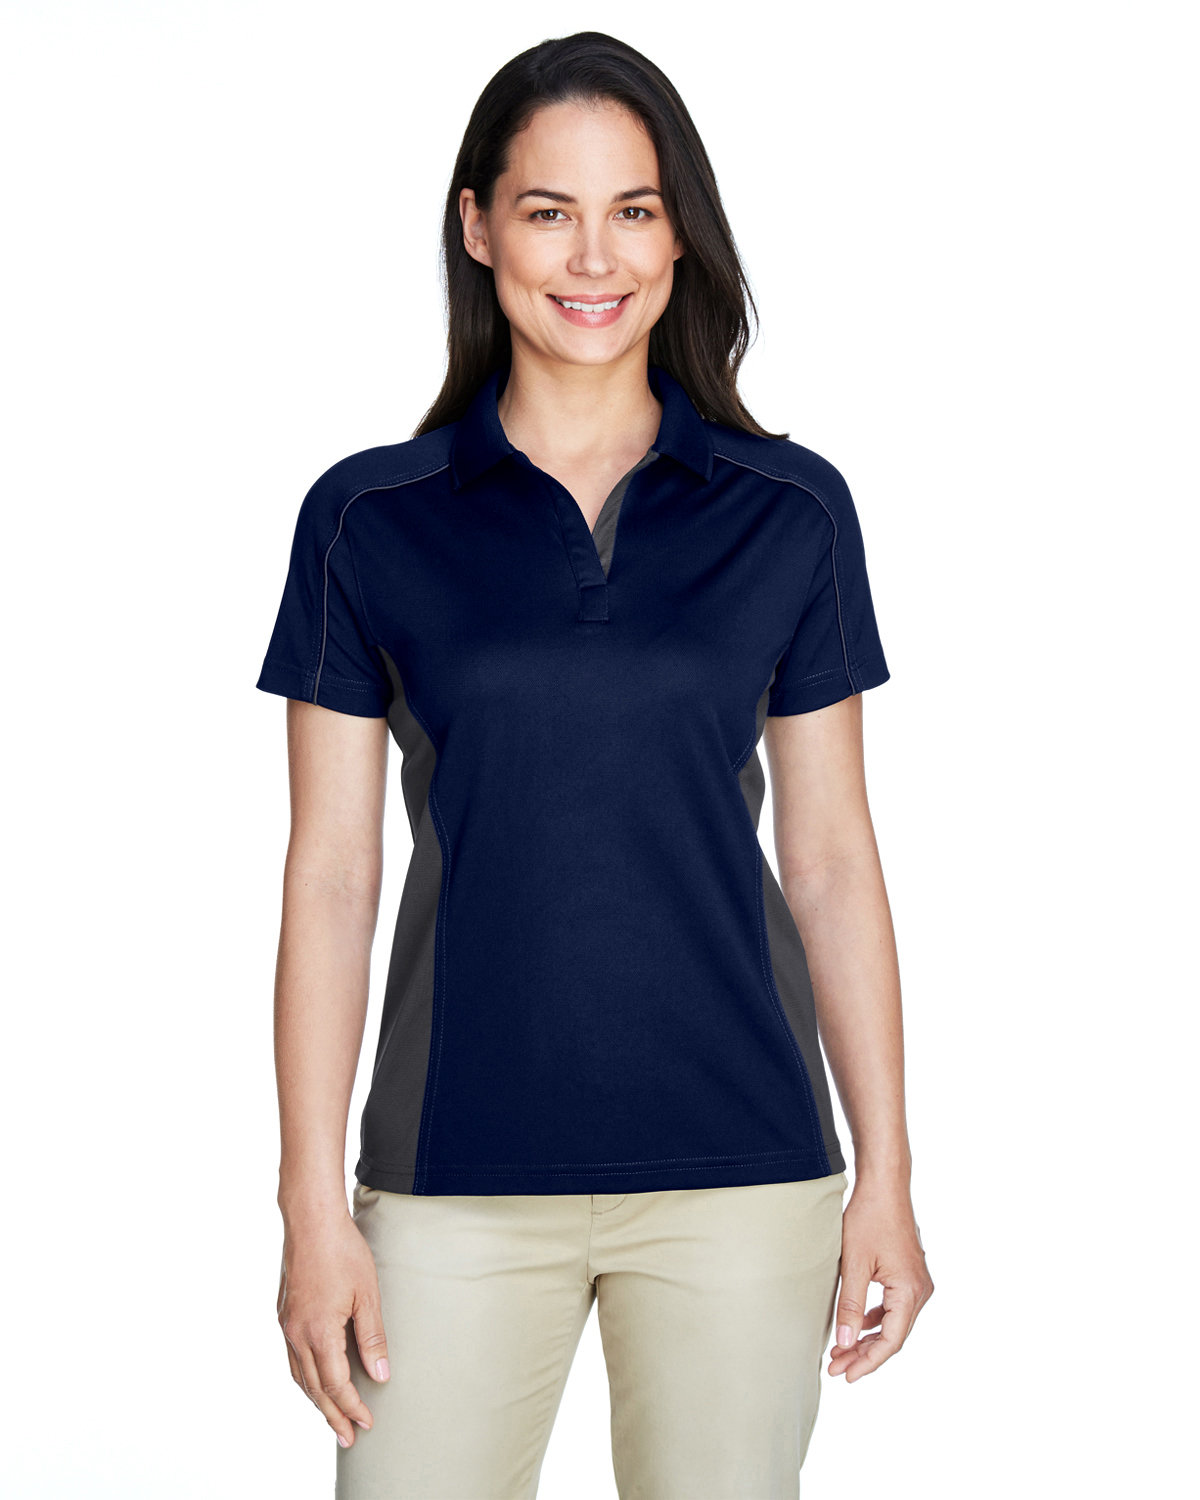 Extreme Ladies' Eperformance™ Fuse Snag Protection Plus Colorblock Polo CLASC NAVY/ CRBN